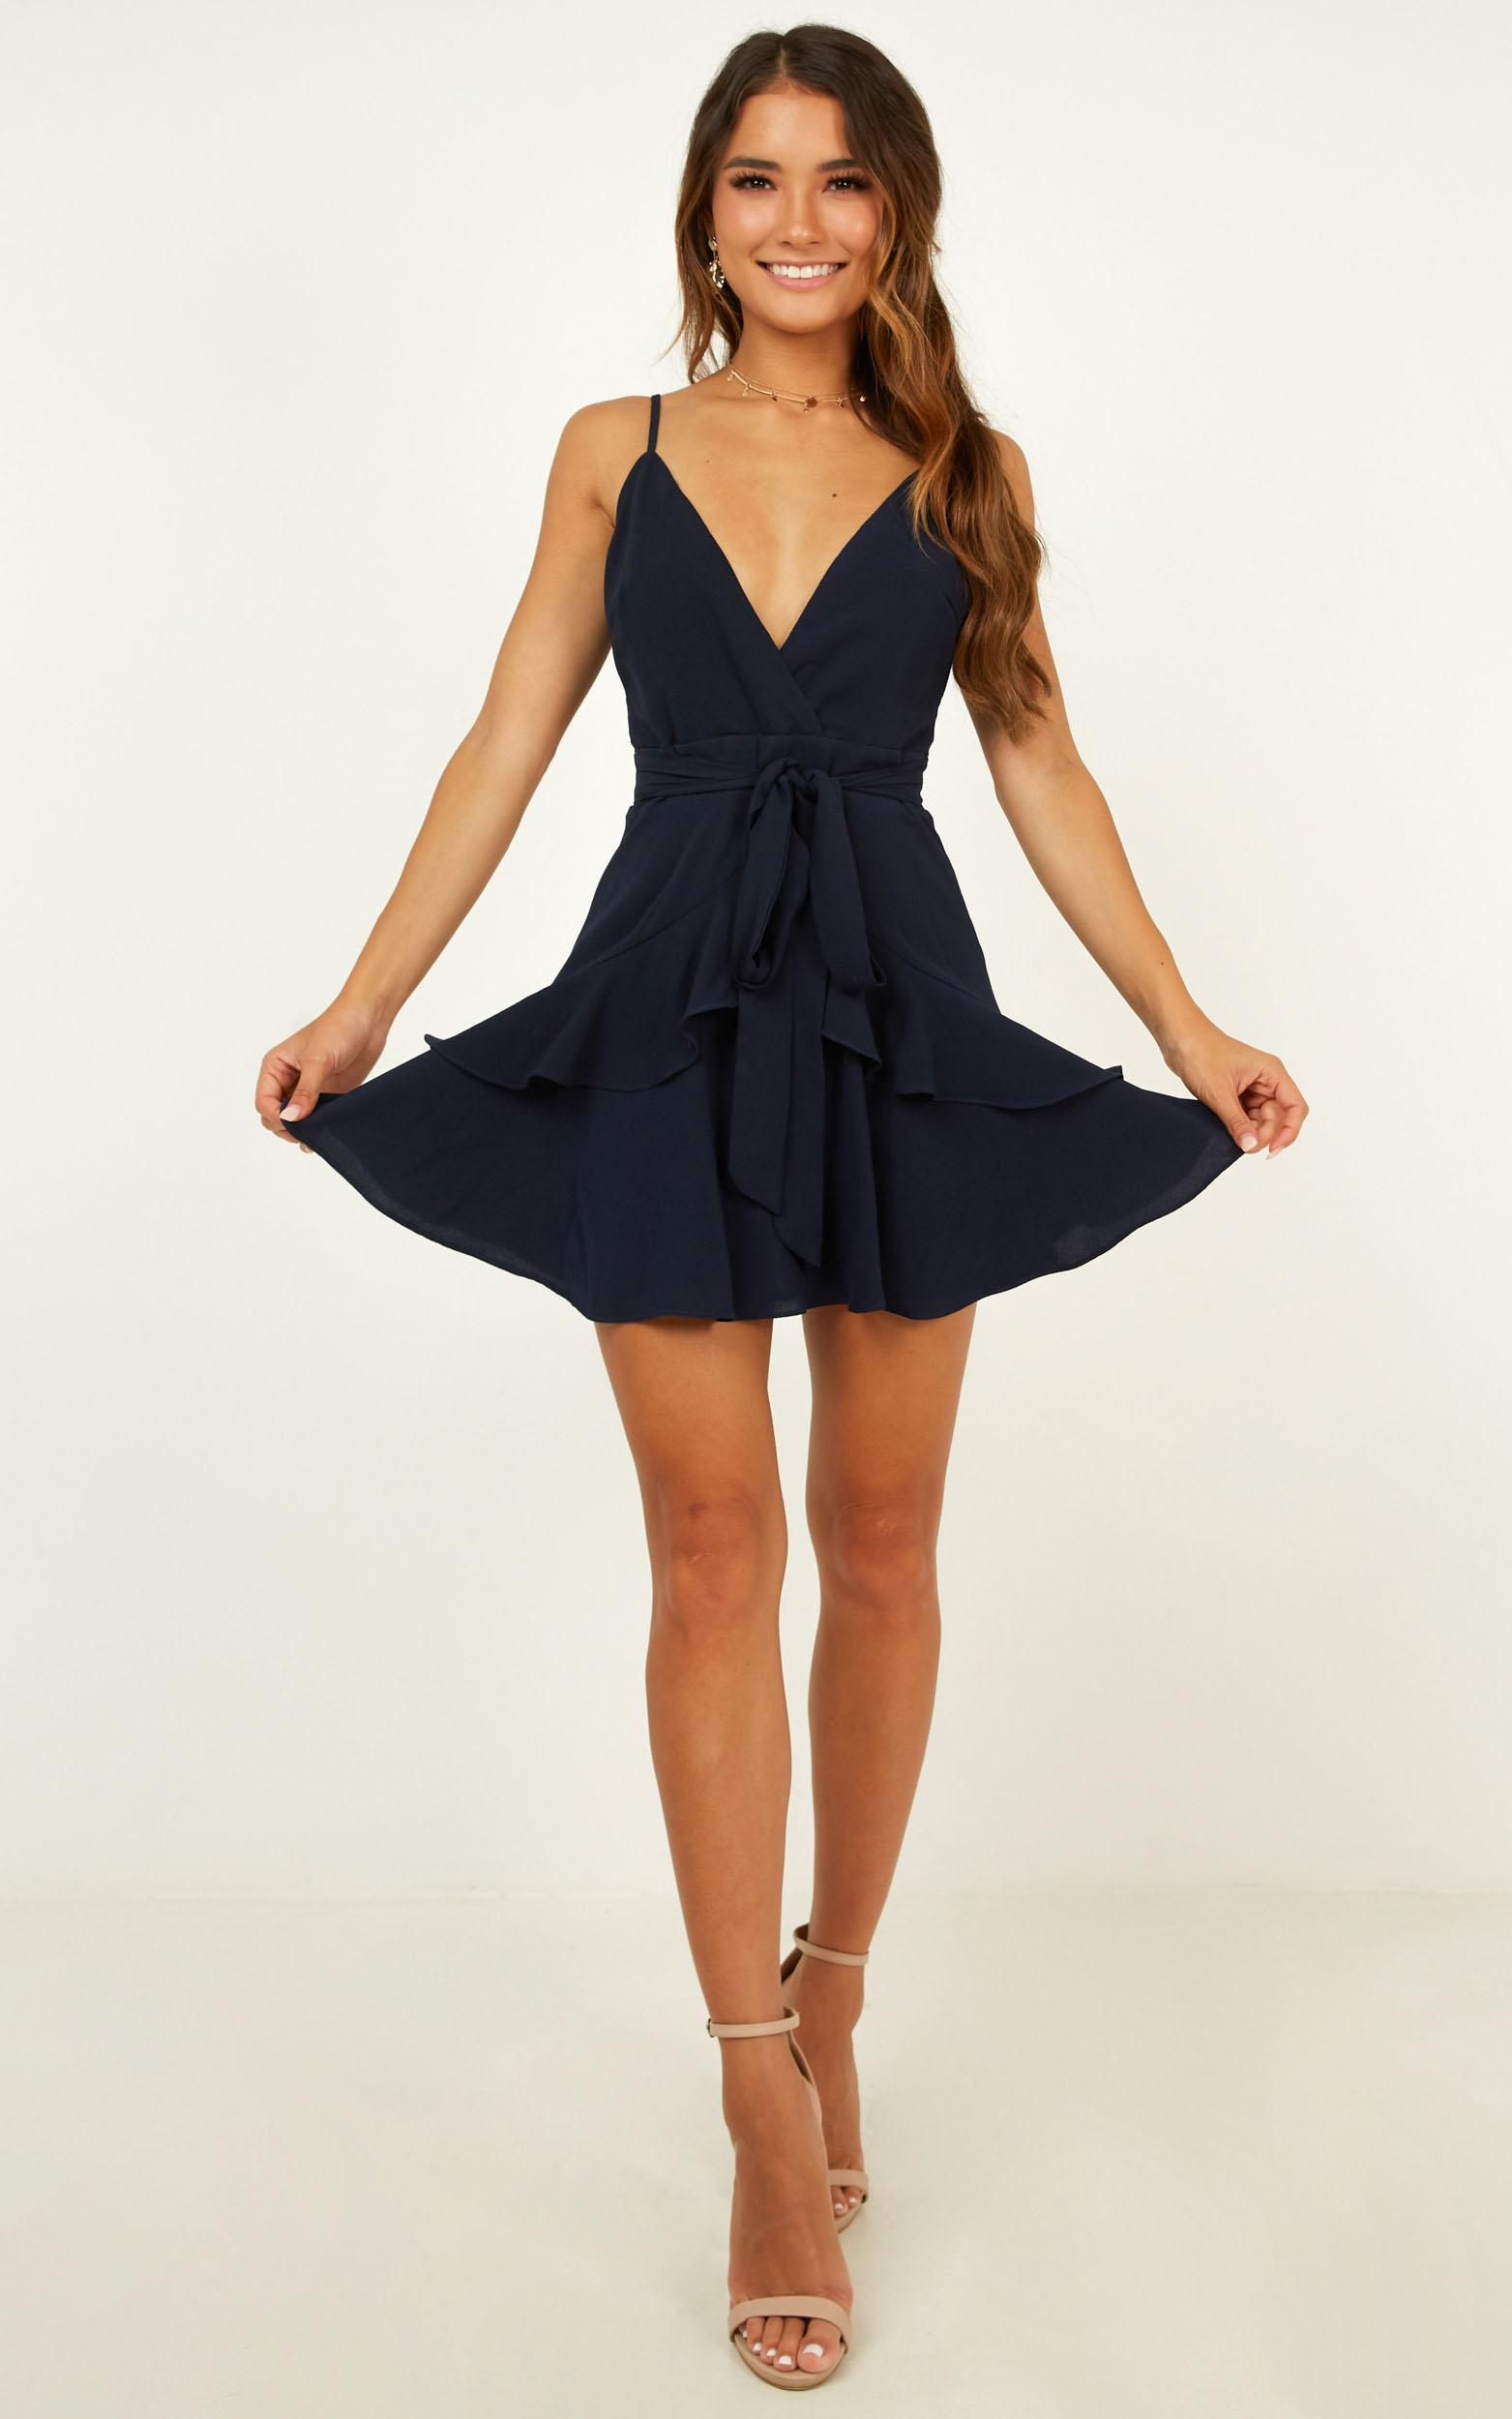 Feels Like Love Dress In Navy - 16 (XXL), Navy, hi-res image number null